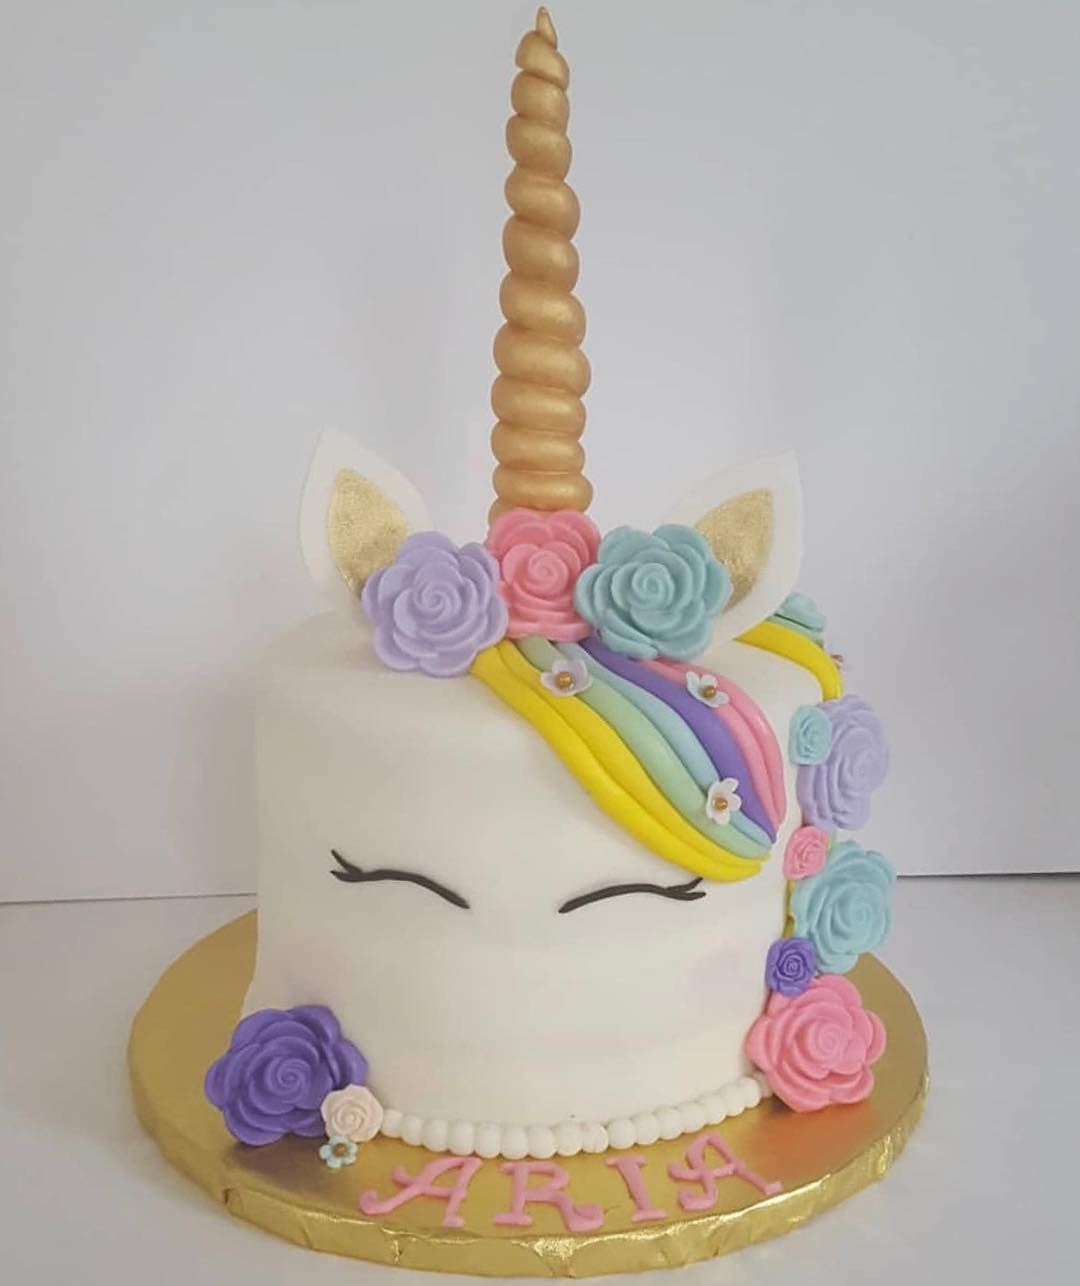 Made this unicorn Birthday cake for a 4 year olds unicorn